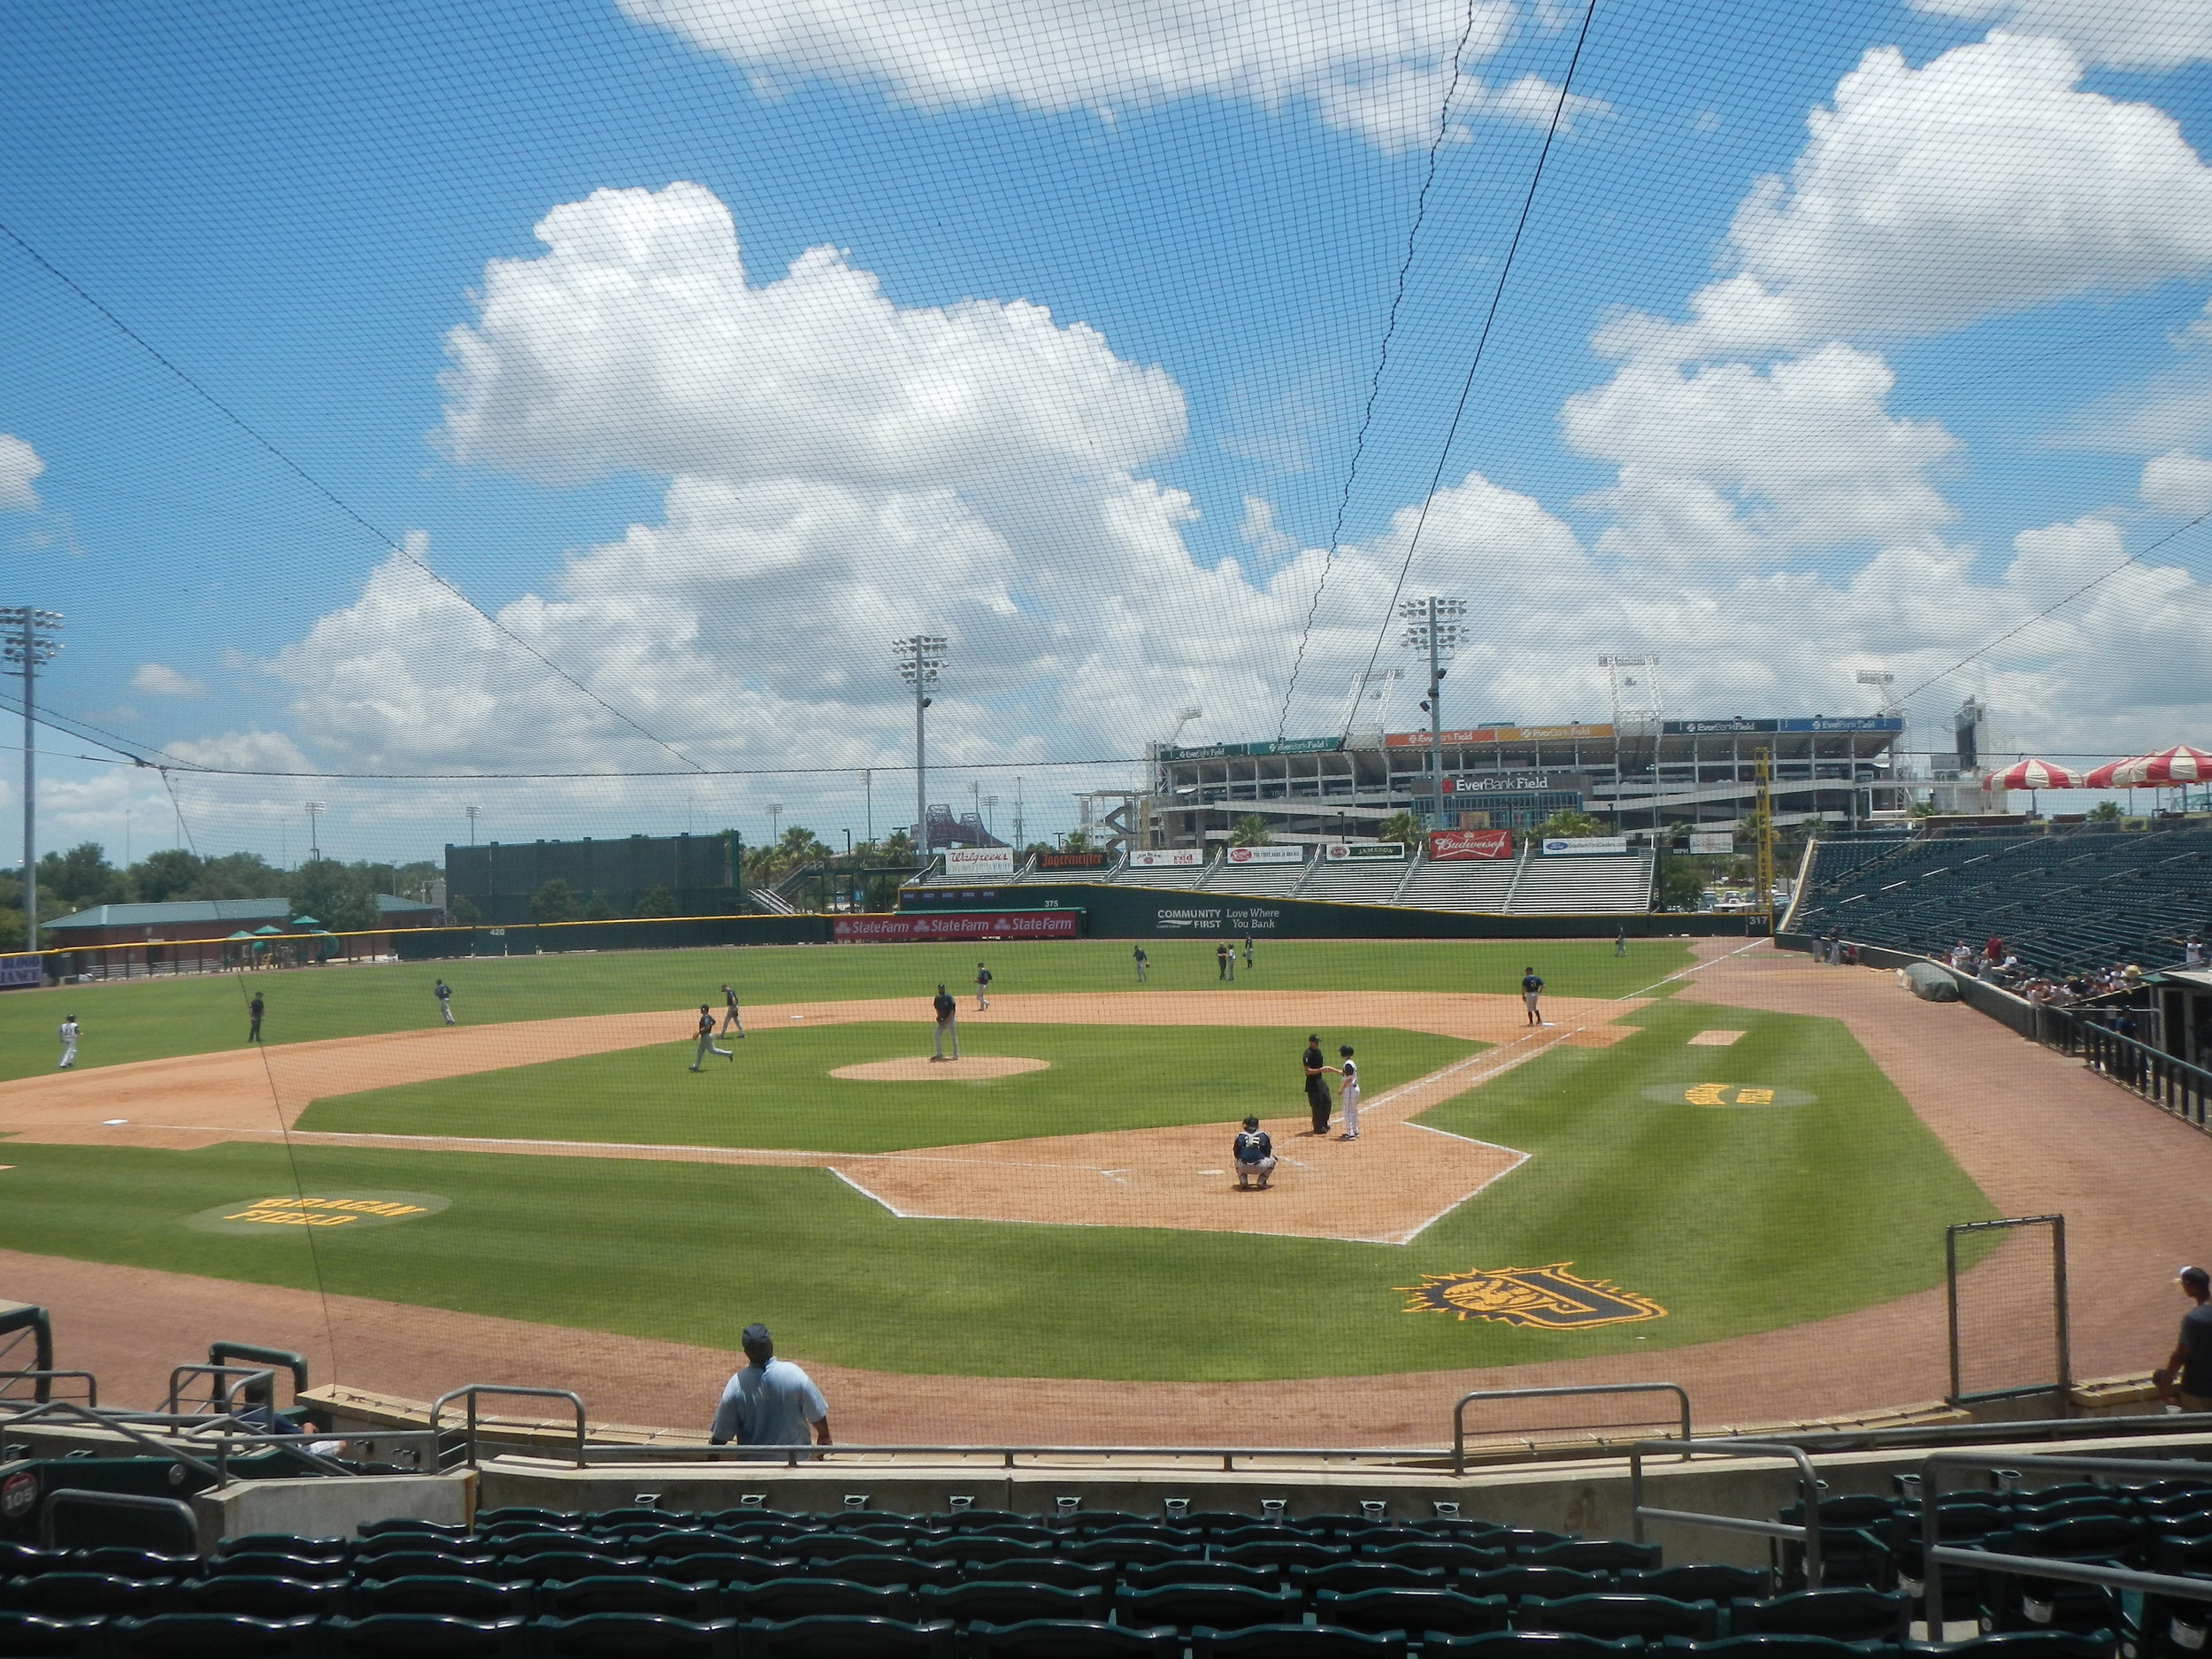 The Baseball Grounds of Jacksonville give fans a nice view of EverBank Field.